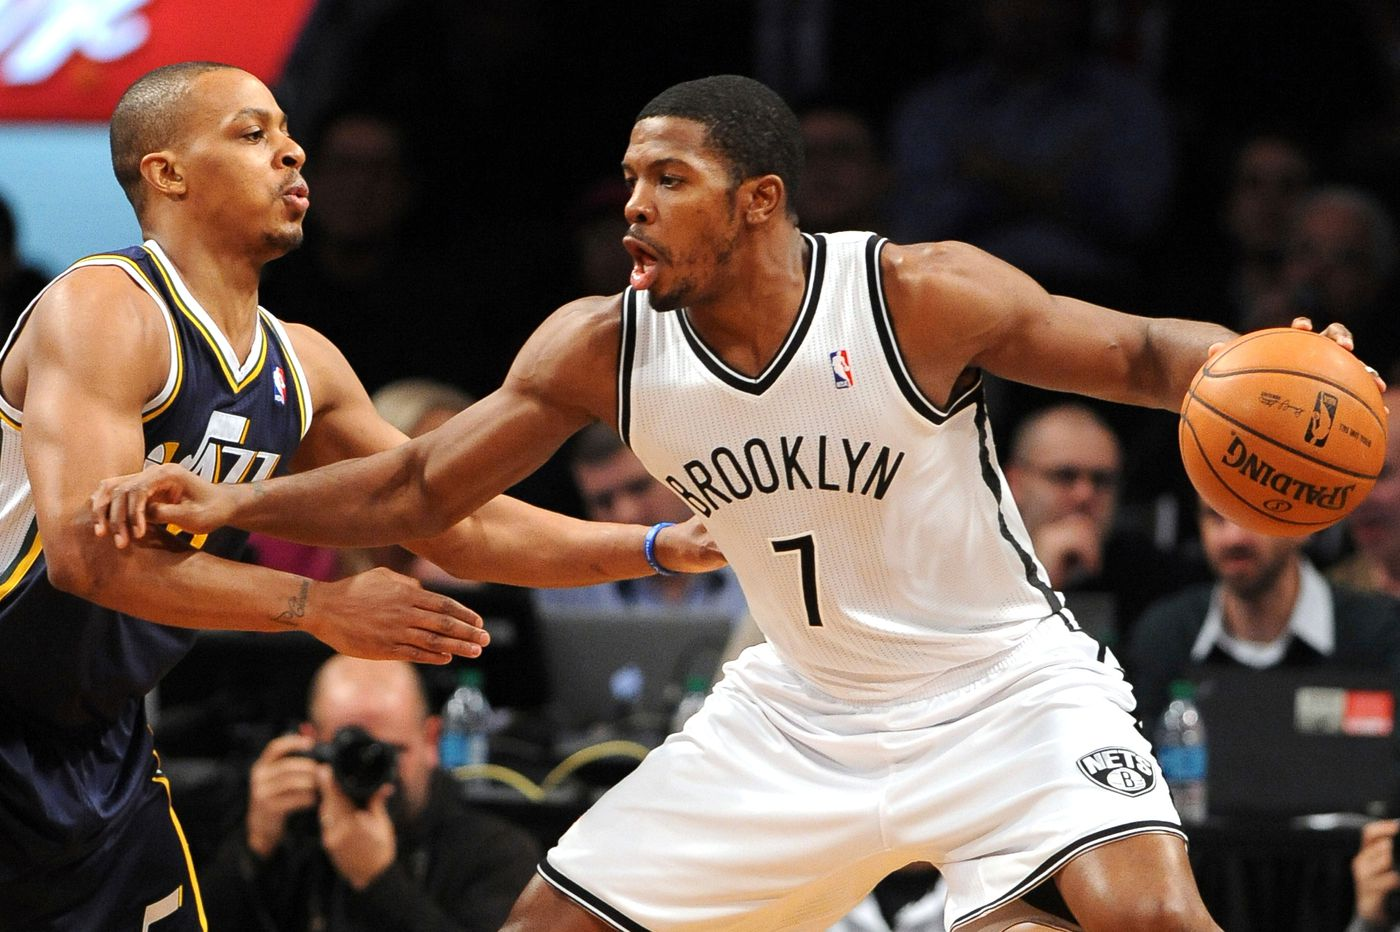 Sixers podcast: Discussing Joe Johnson, Carmelo Anthony, and more